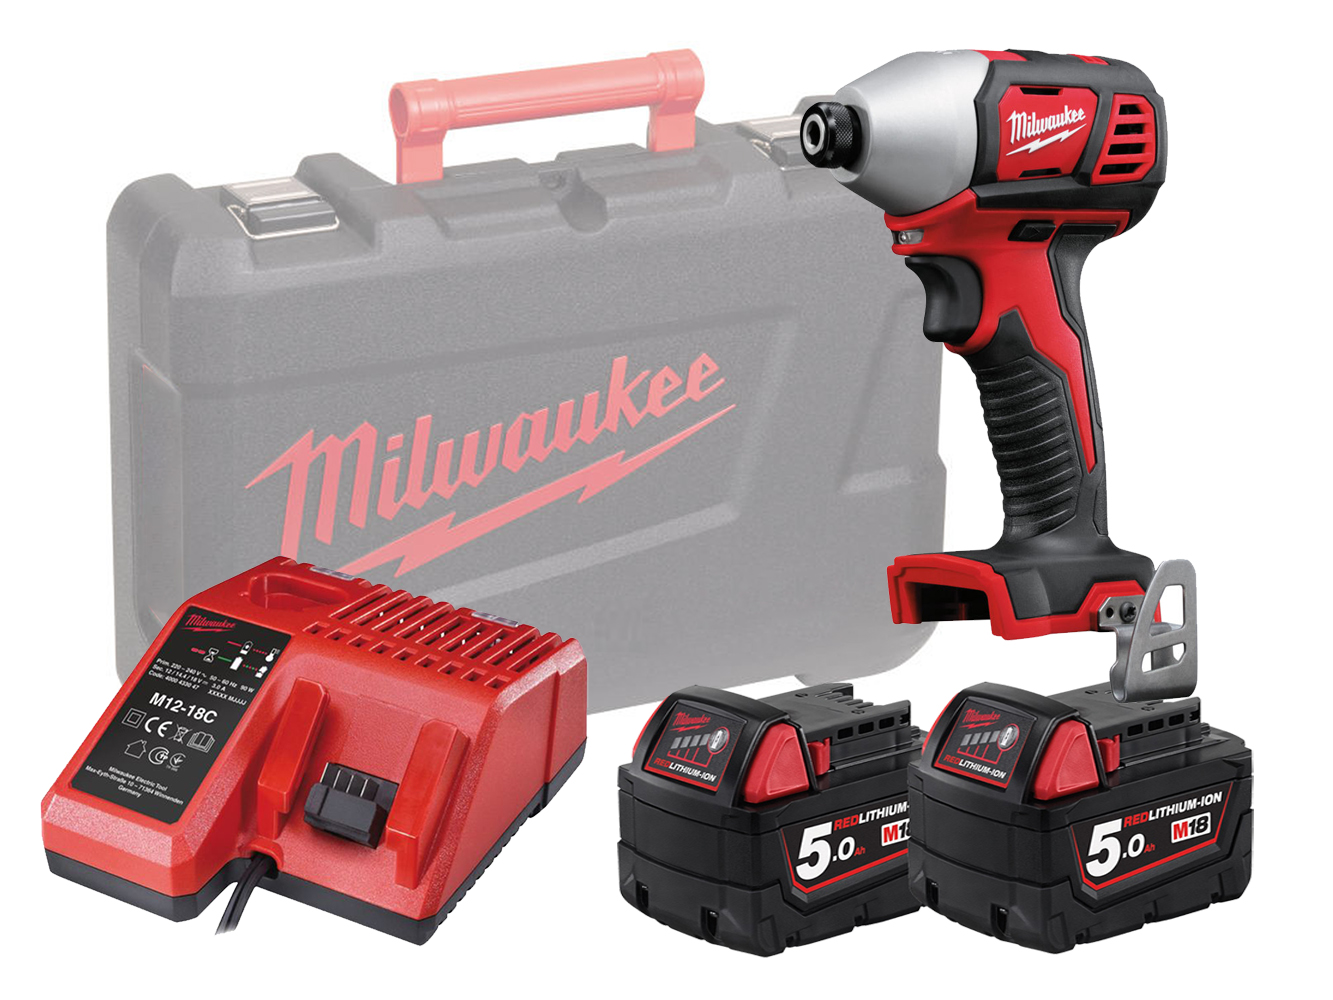 MILWAUKEE 18V BRUSHED IMPACT DRIVER - M18BID - 5.0AH PACK